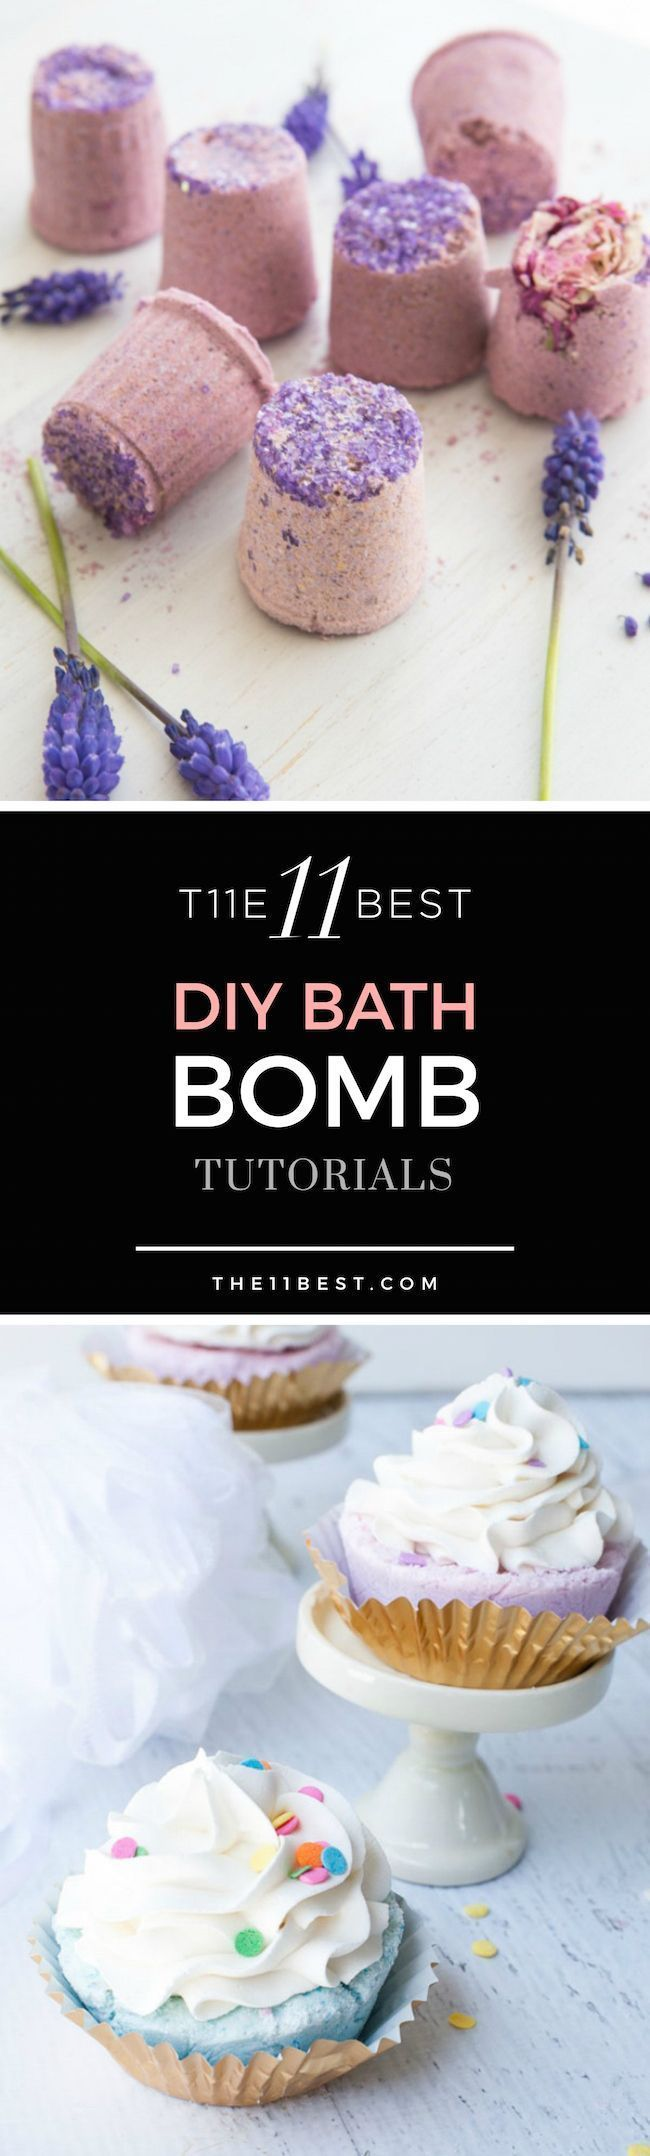 The 11 Best DIY Bath Bomb ideas and tutorials. Instructions for how to make bath bombs.